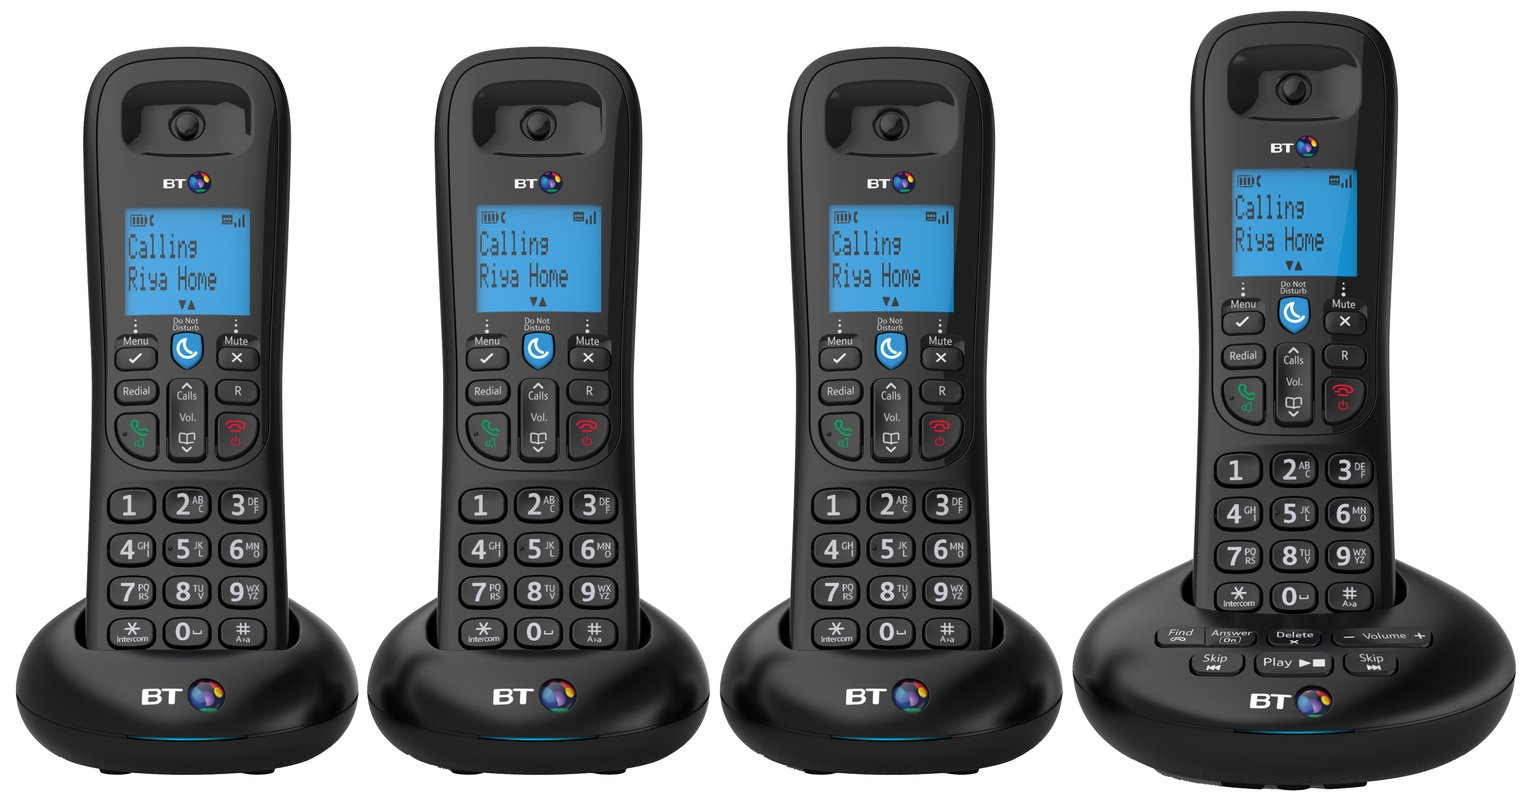 BT 3570 Cordless Telephone with Answer Machine - Quad